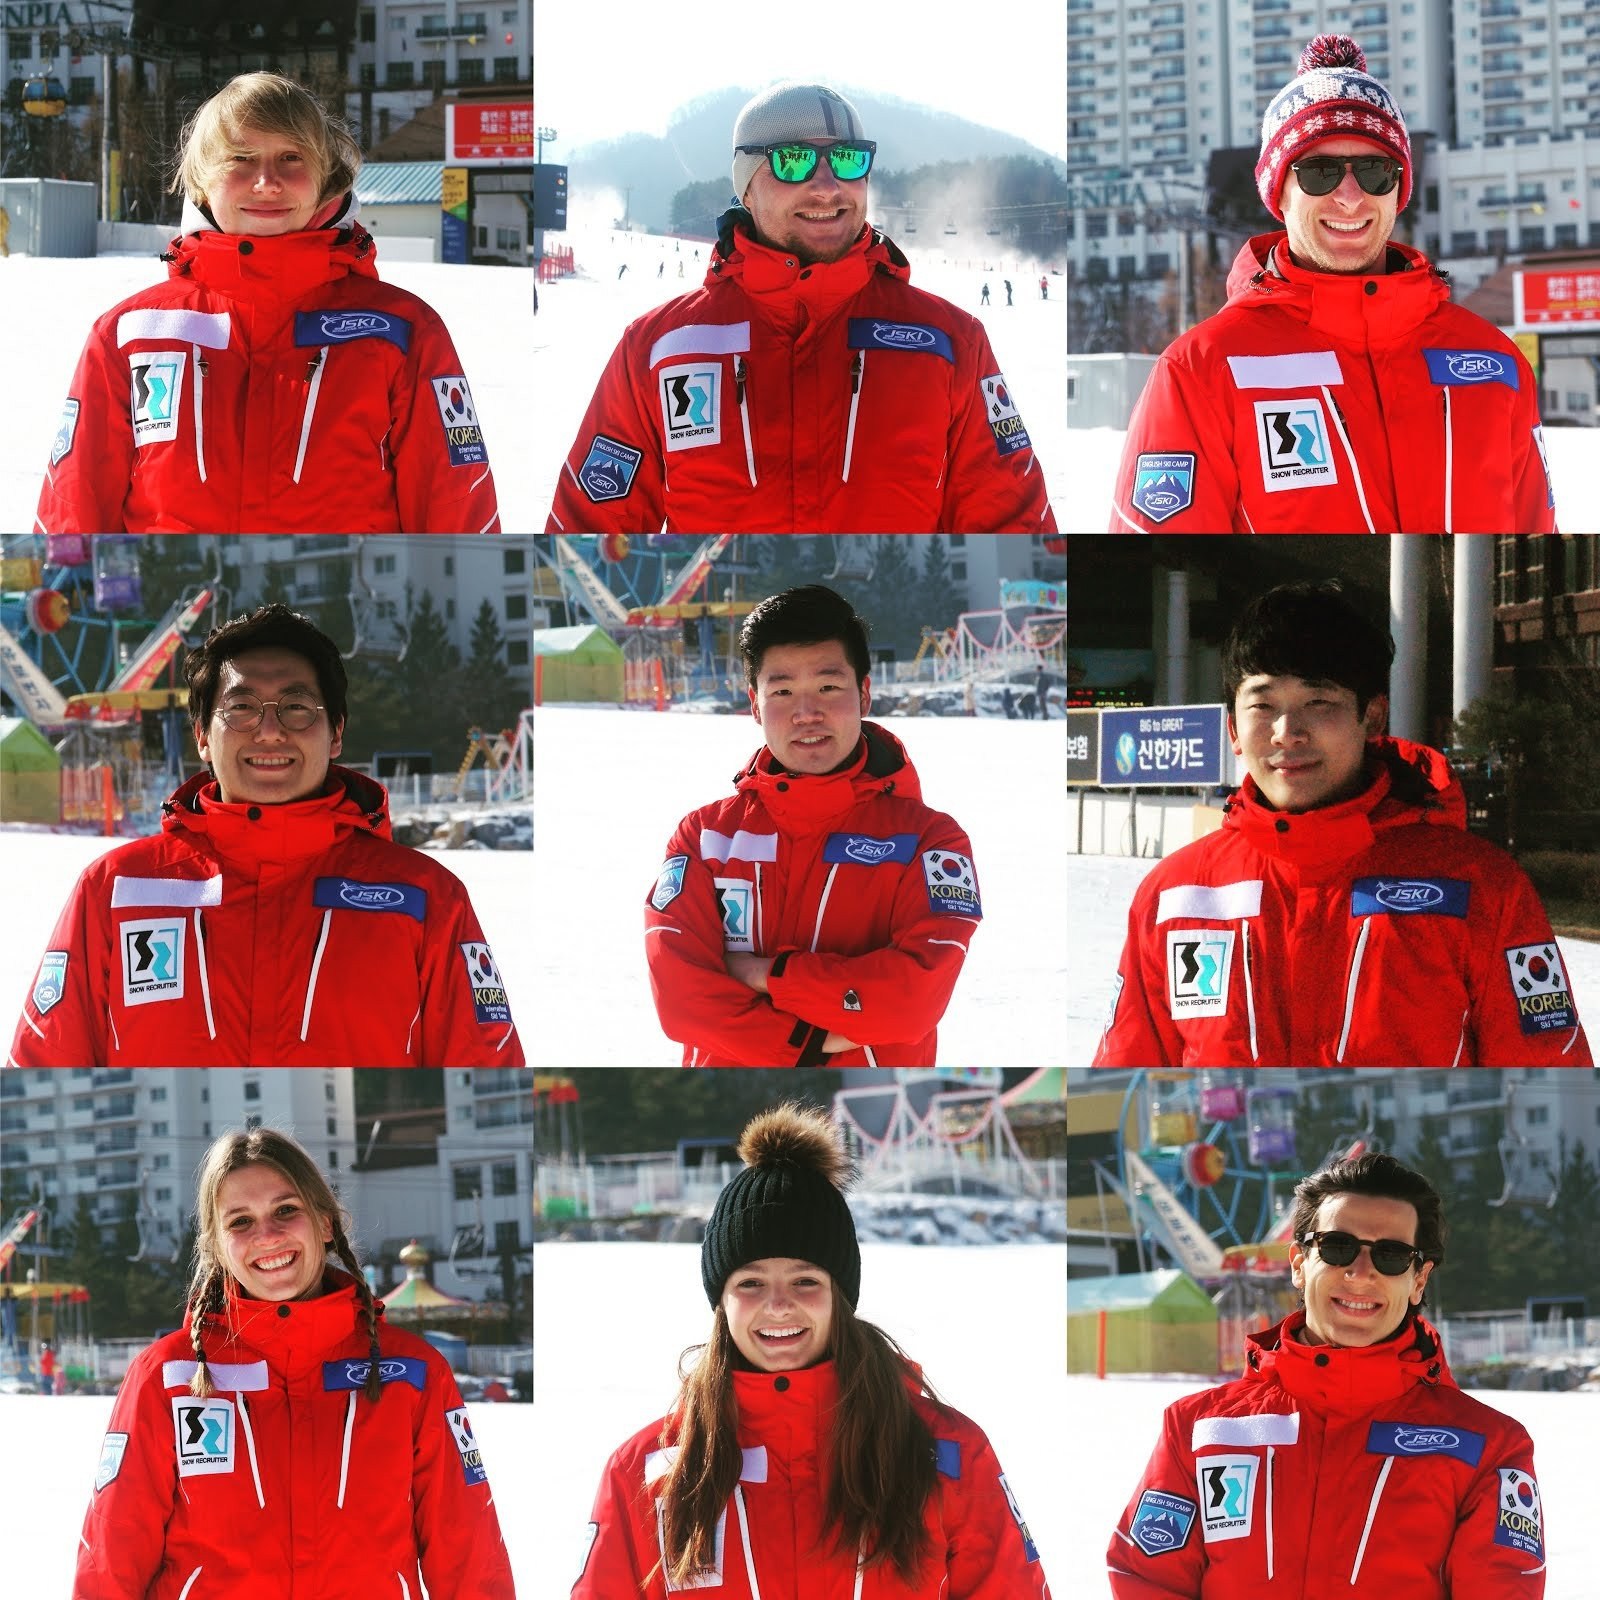 J Ski Team at Alpensia Ski Resort Korea